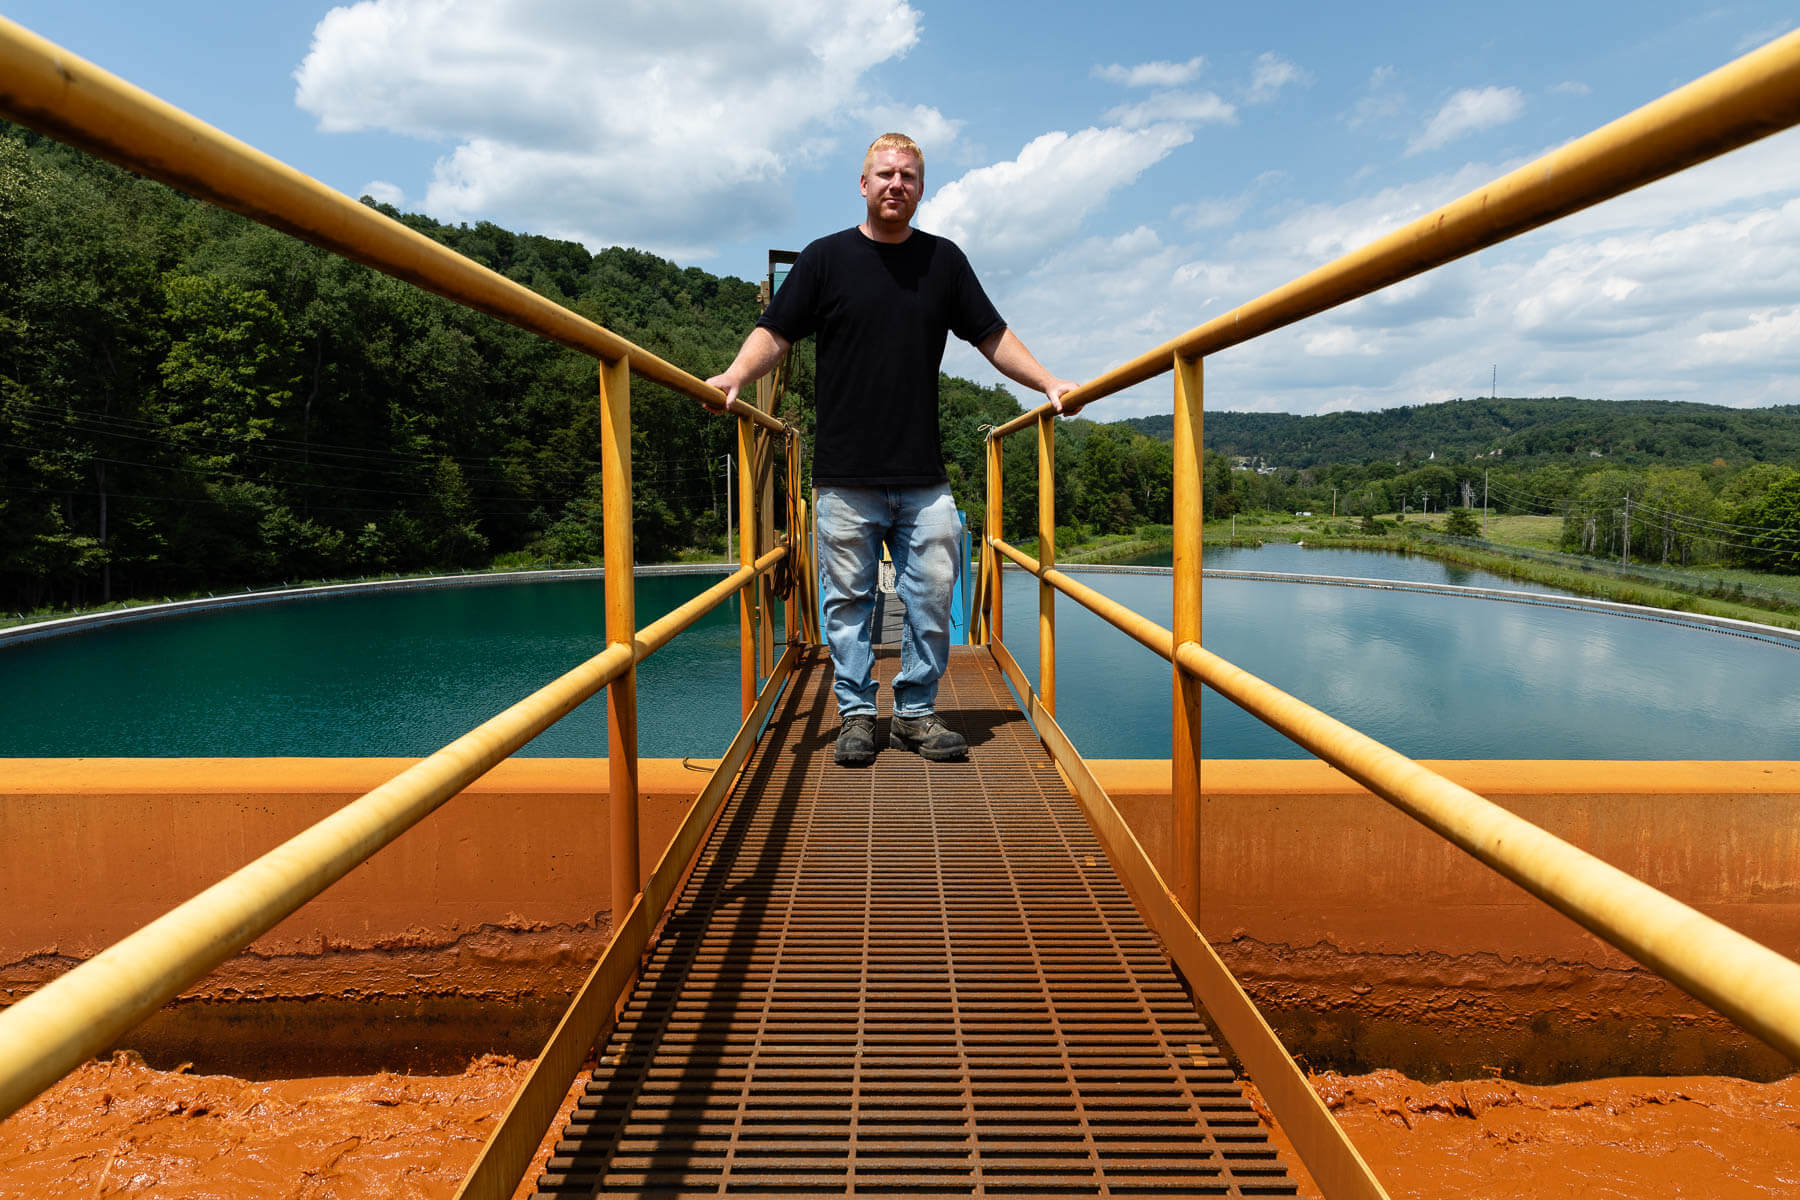 Mark Lloyd, engineer at the Lancashire Acid Mine Drainage Treatment Plant in Barr Township, Pa., poses on a catwalk above iron oxide sludge at the plant. The current plant, which opened in 2011, actively pumps water from the Lancashire No. 15 mine, treating roughly six million gallons of water daily to remove rust-colored iron oxide, before discharging the water into the West Branch. (Photo by Ethan Weston/Chesapeake Bay Program)